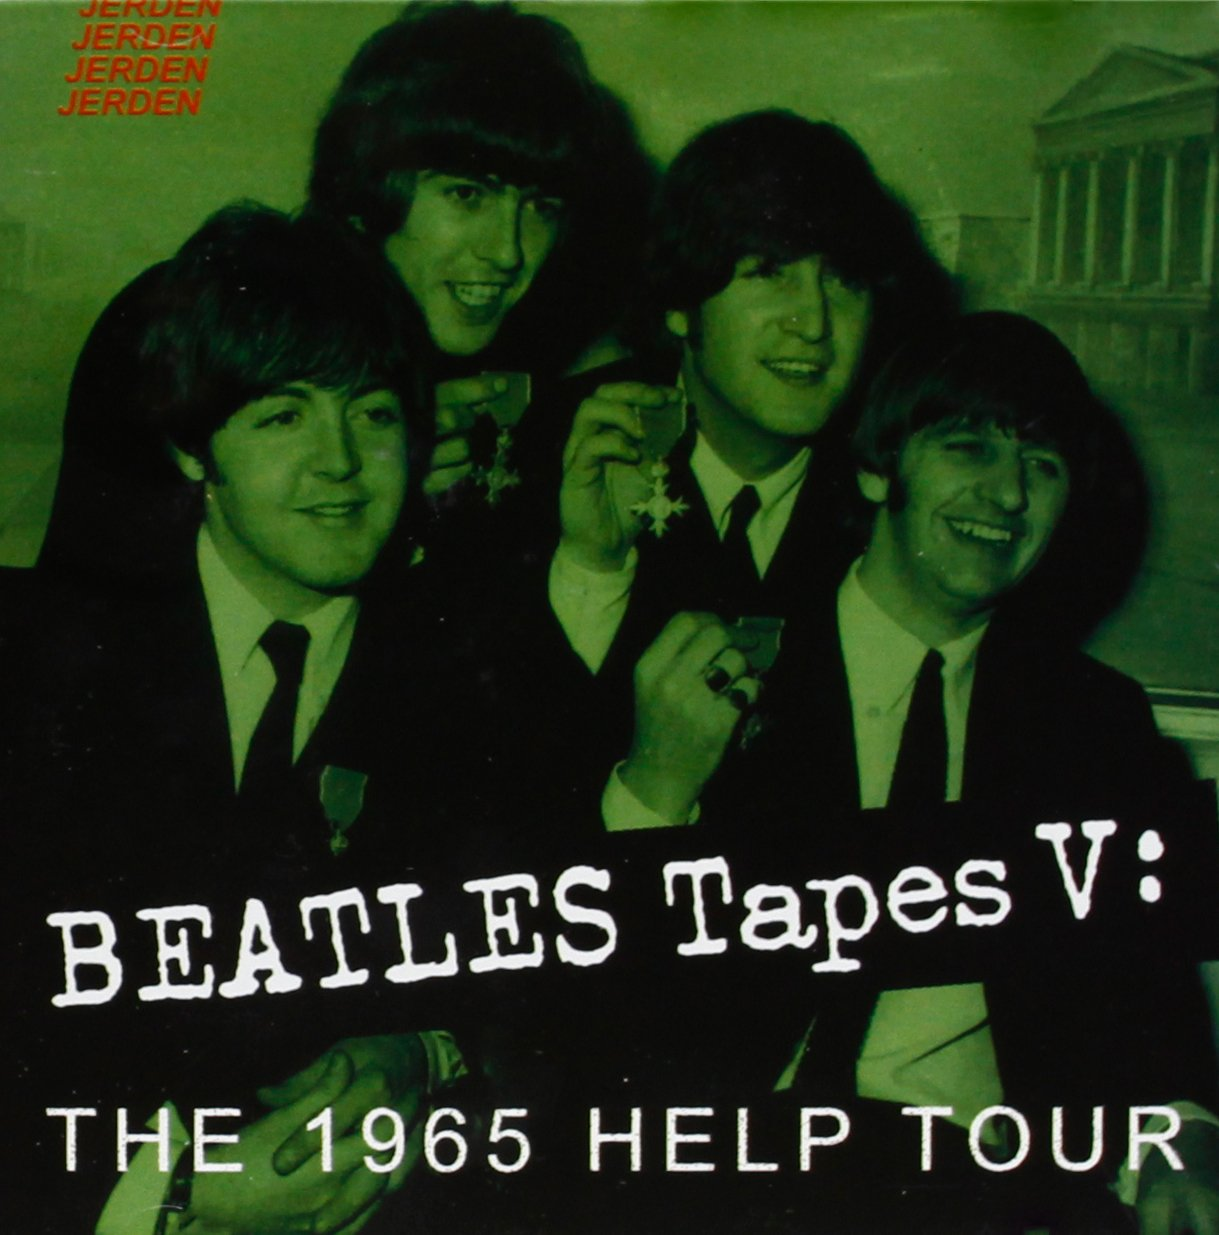 Beatles Tapes V: the 1965 Help Tour by Jerden Records